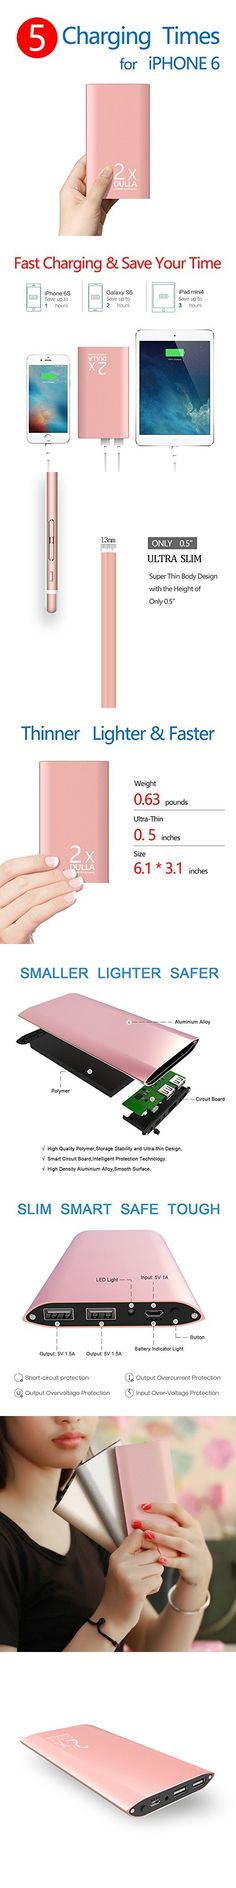 DULLA M50000 Portable Power Bank 12000mAh External Battery Charger, Ultra Slim Design with 2 USB Ports for iPhone7 7Plus 6s 6 Plus, iPad, Samsung Galaxy and More(rose gold)